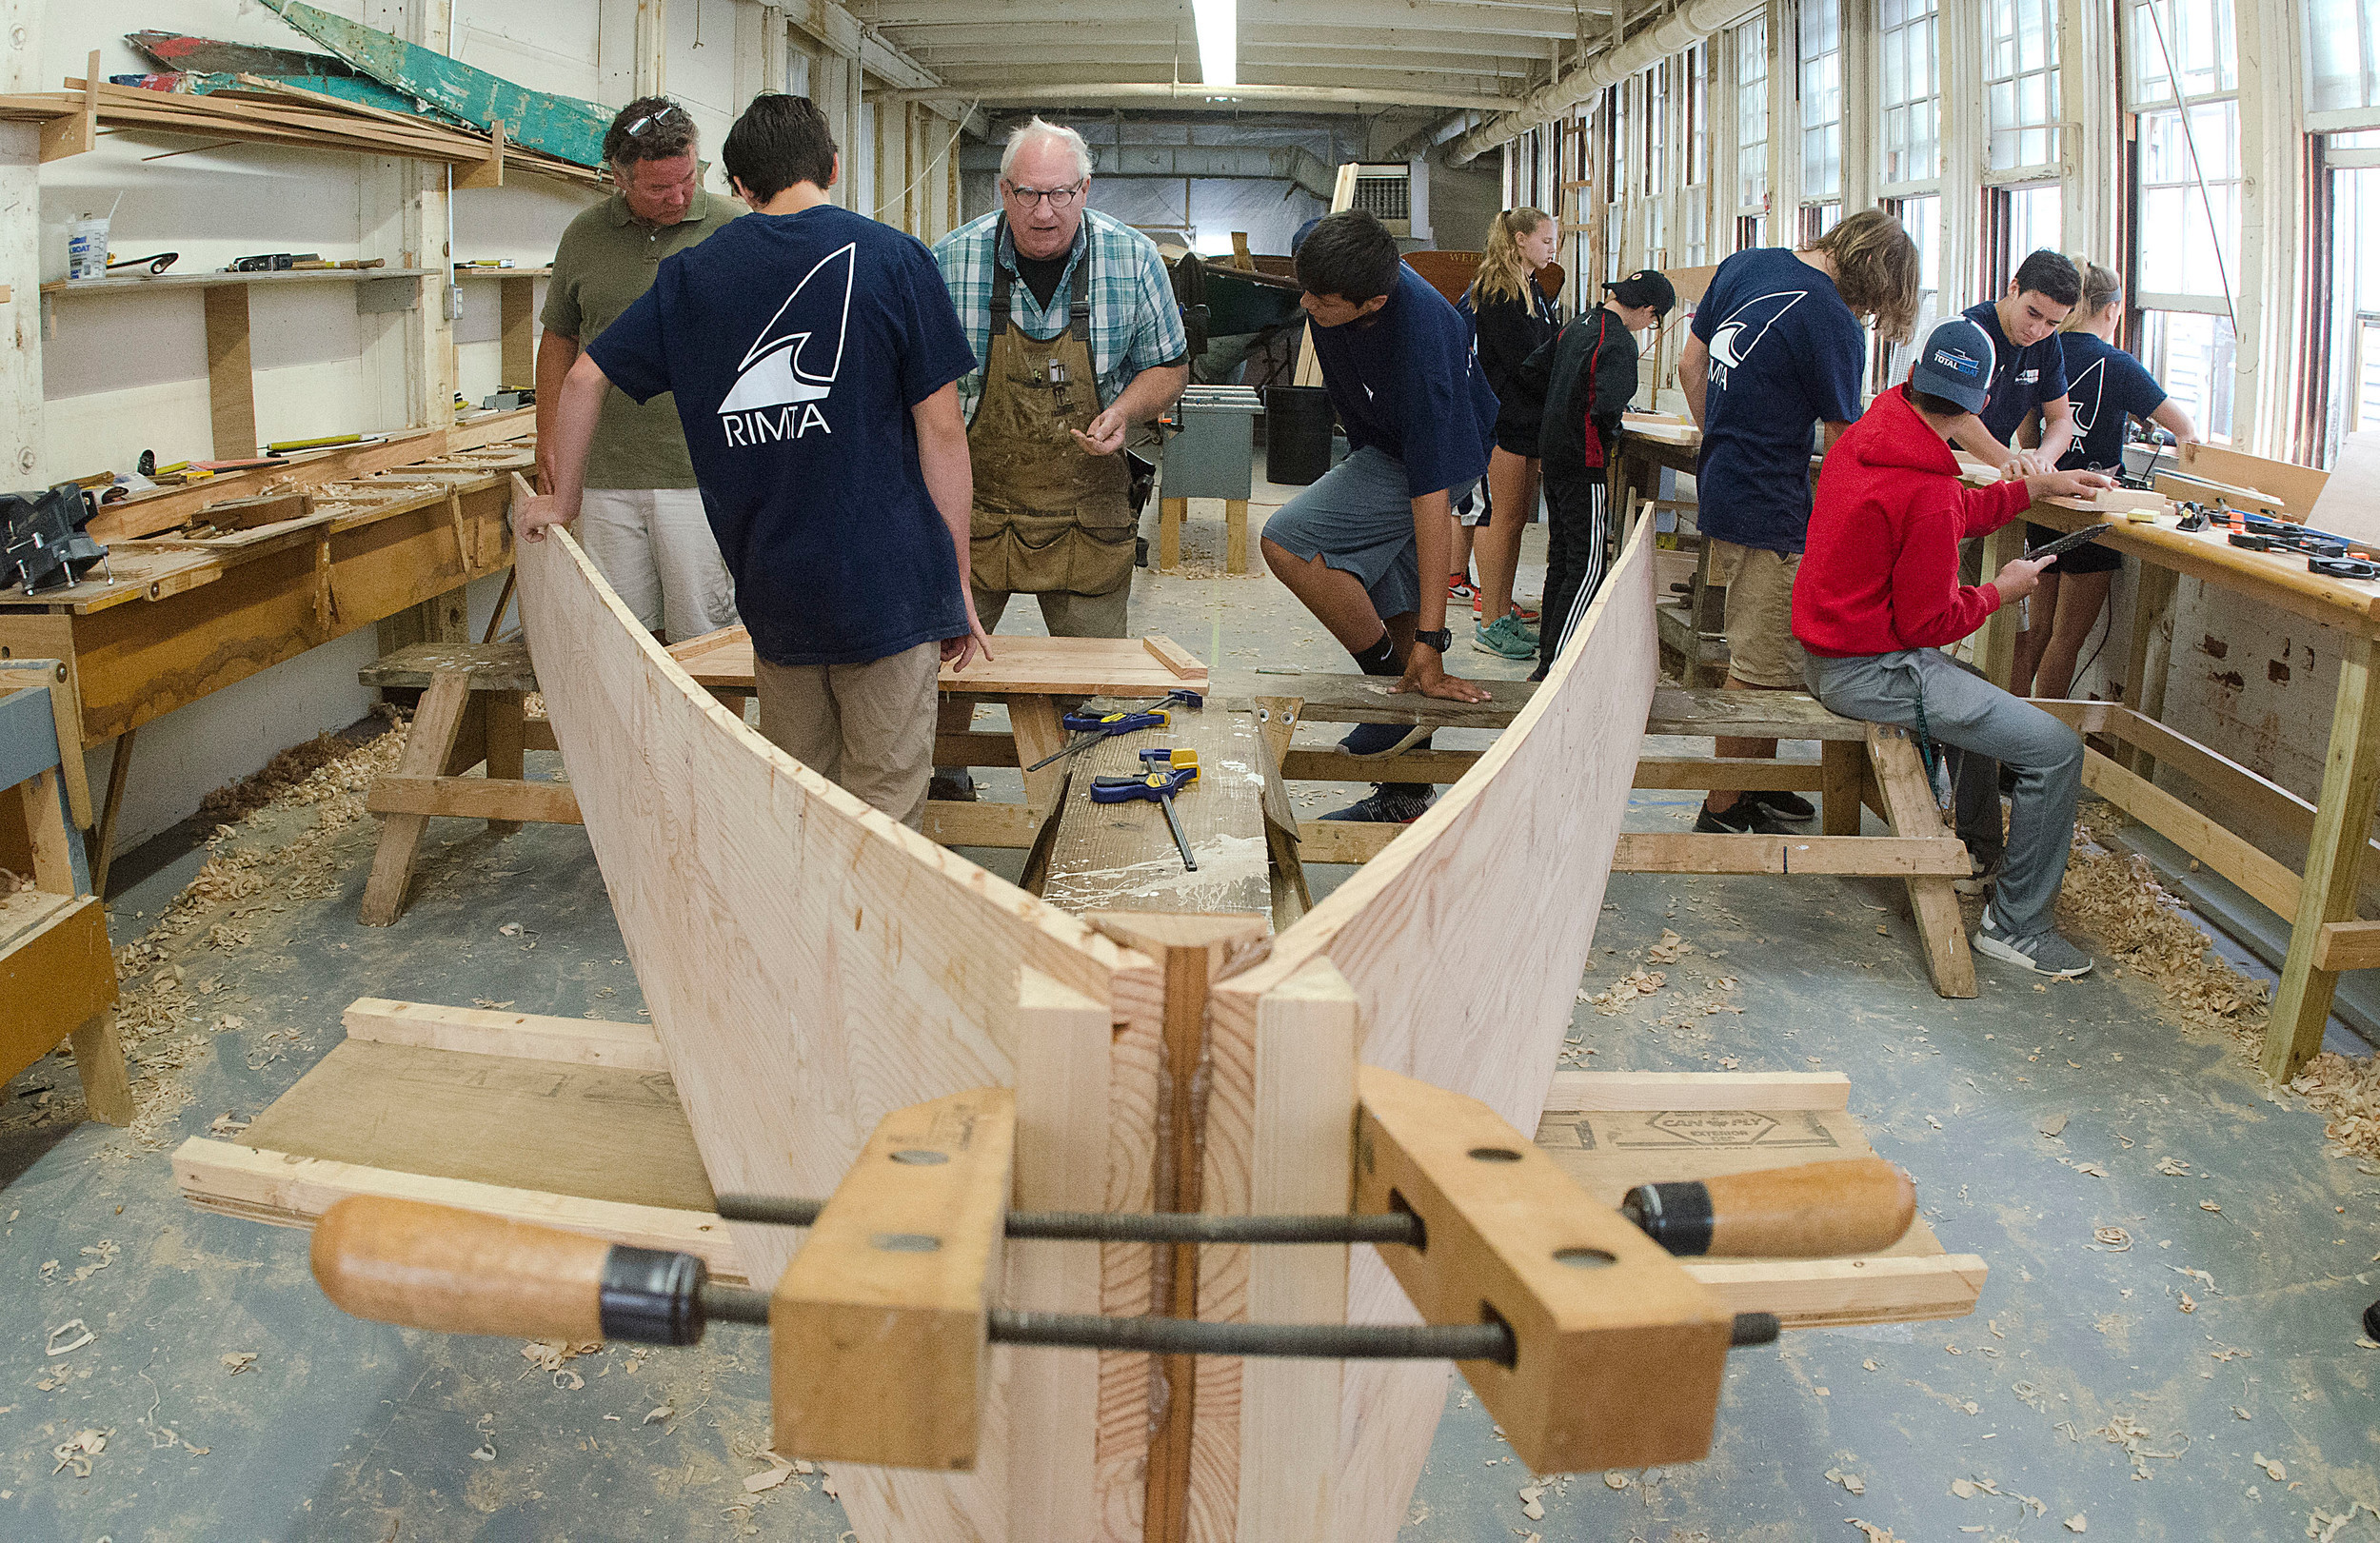 Boat builder Dan Shea (center) and Herreshoff Marine Museum Education Director Kirk Cusik work with a group of students on a Westport Skiff as part of a summer boat building program.